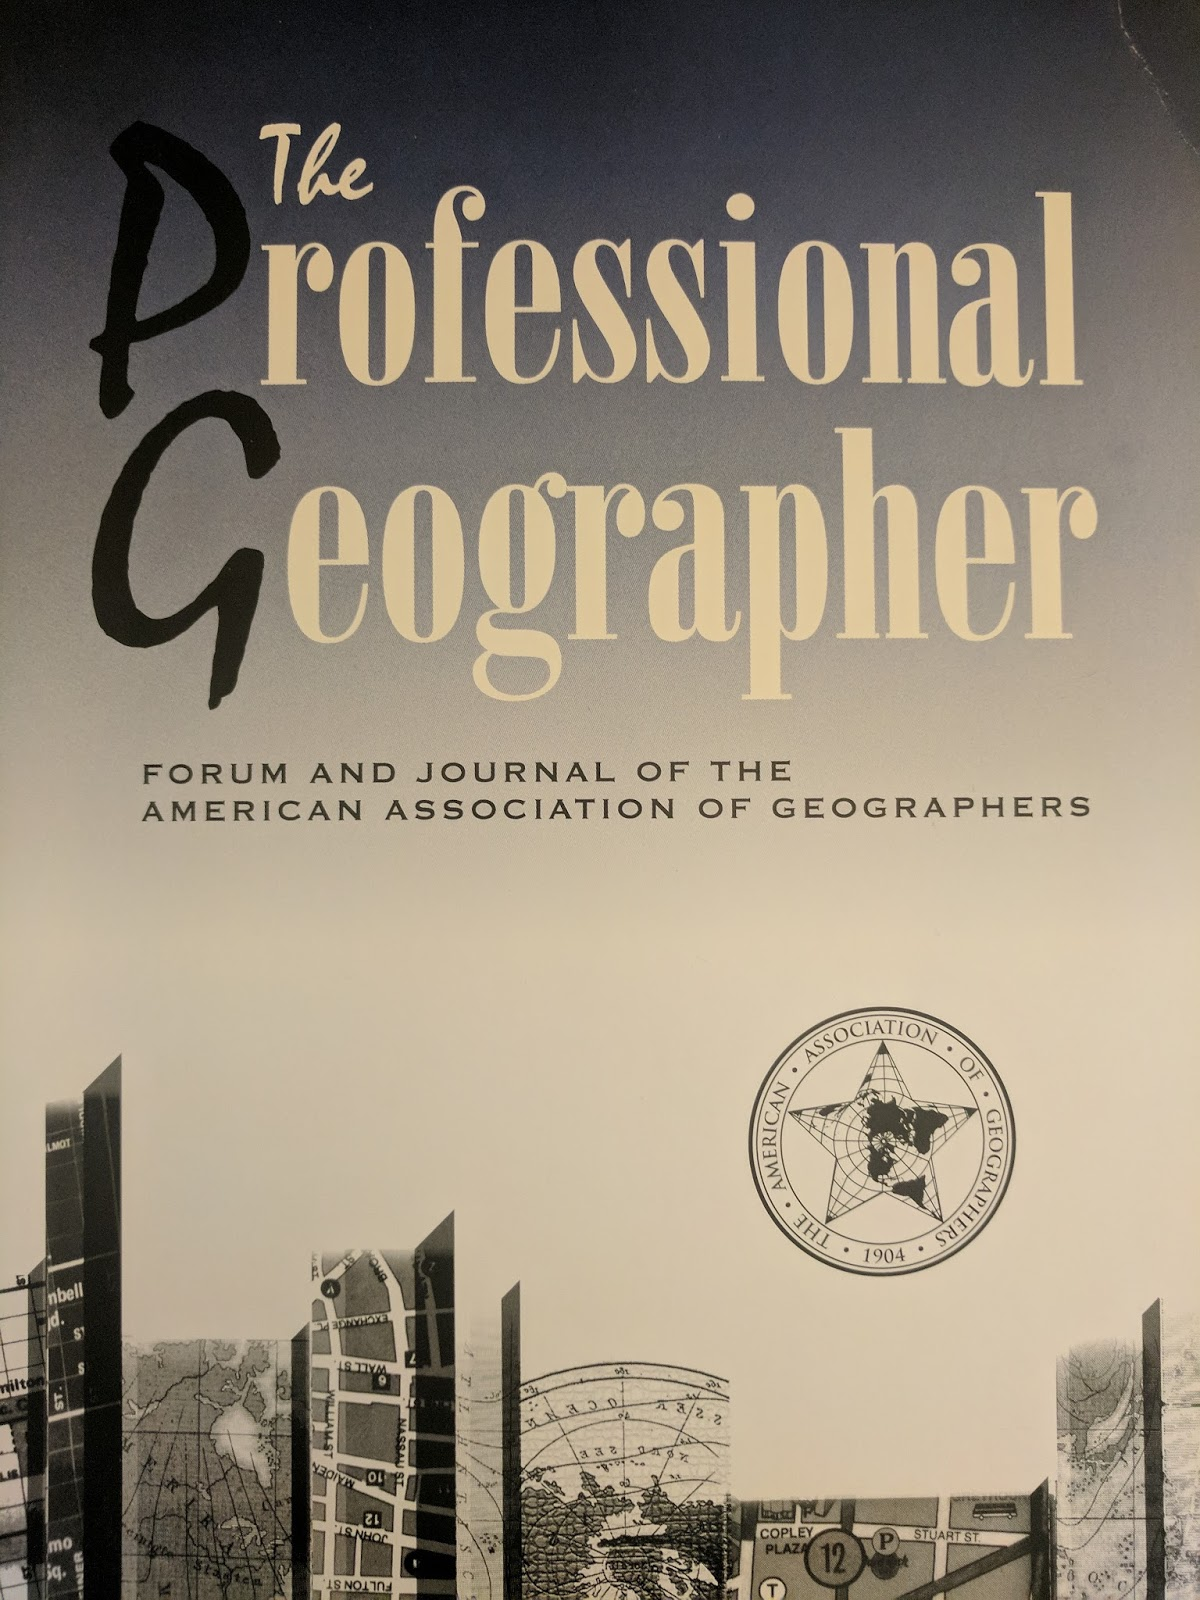 abstract geographers have long been associated with mapping and cartography as the visual representation of space fits neatly into the wide ranging